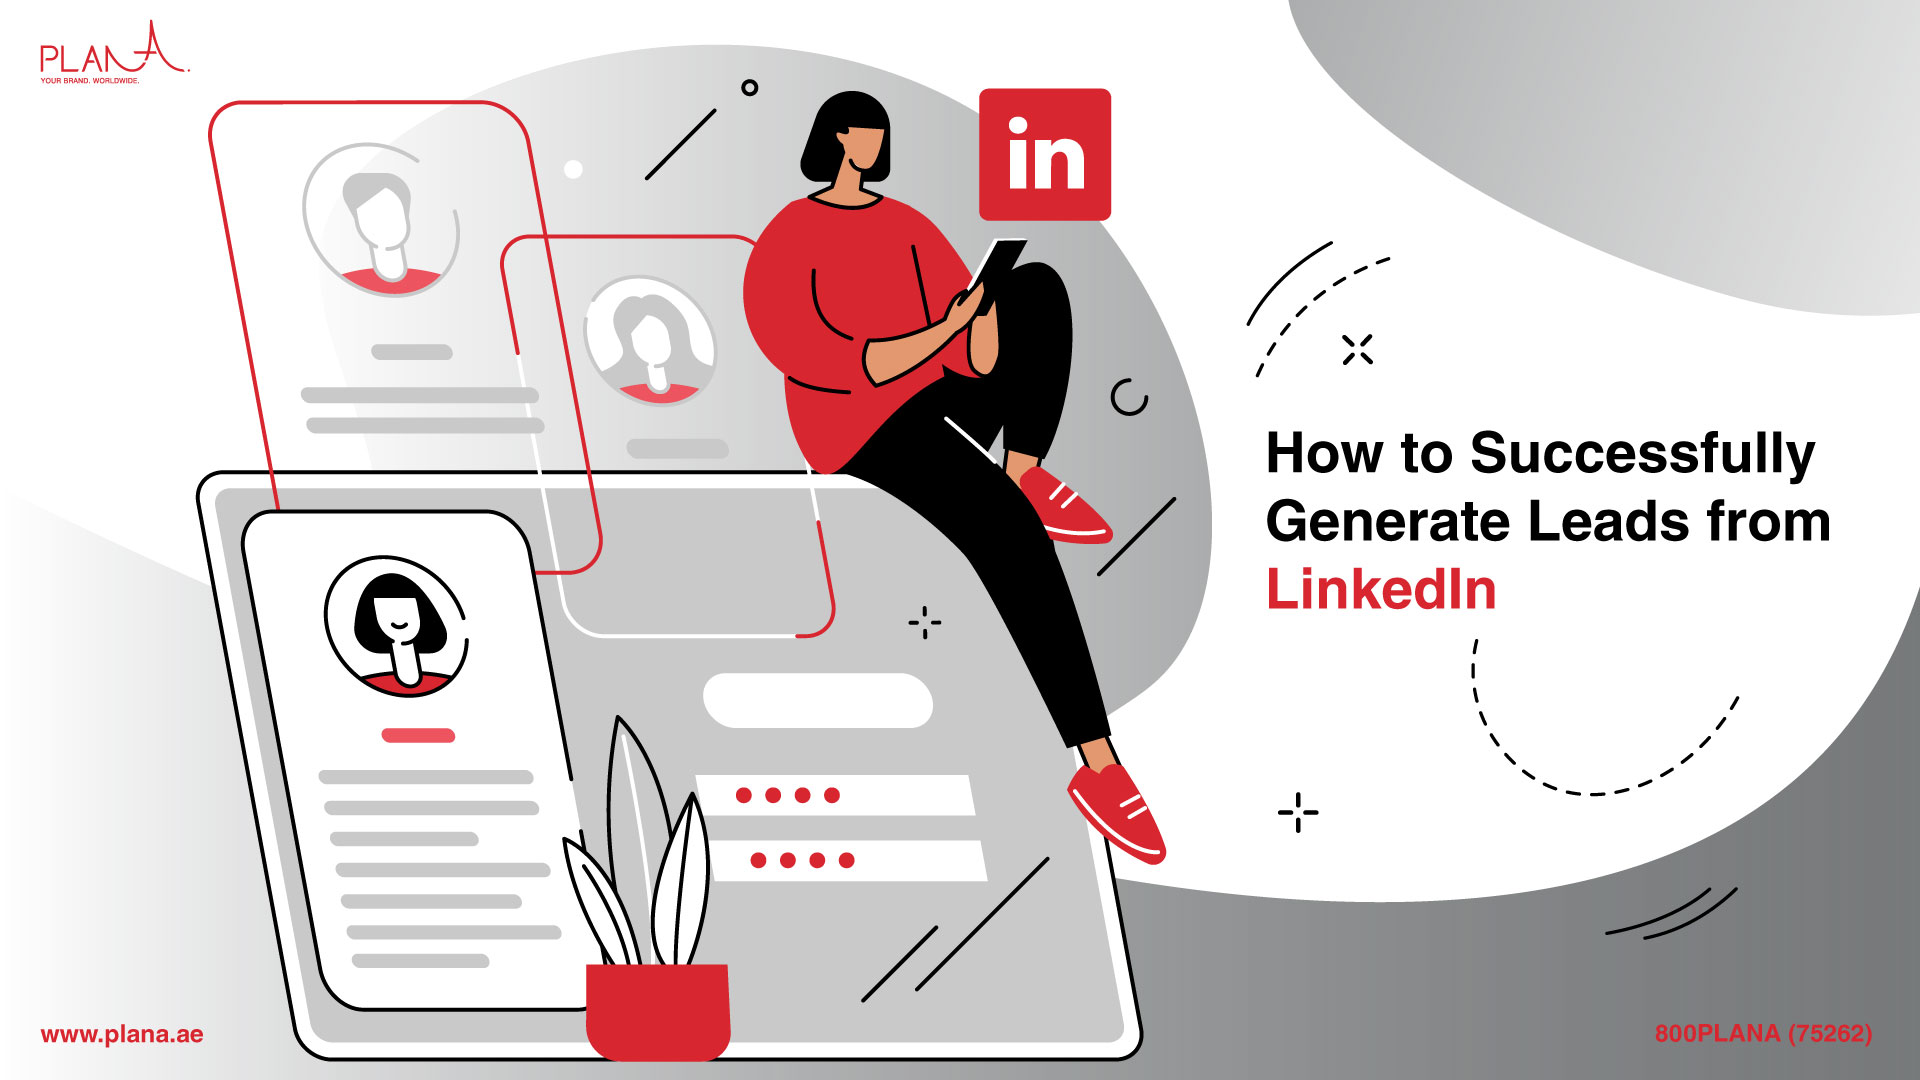 How to Successfully Generate Leads from LinkedIn?